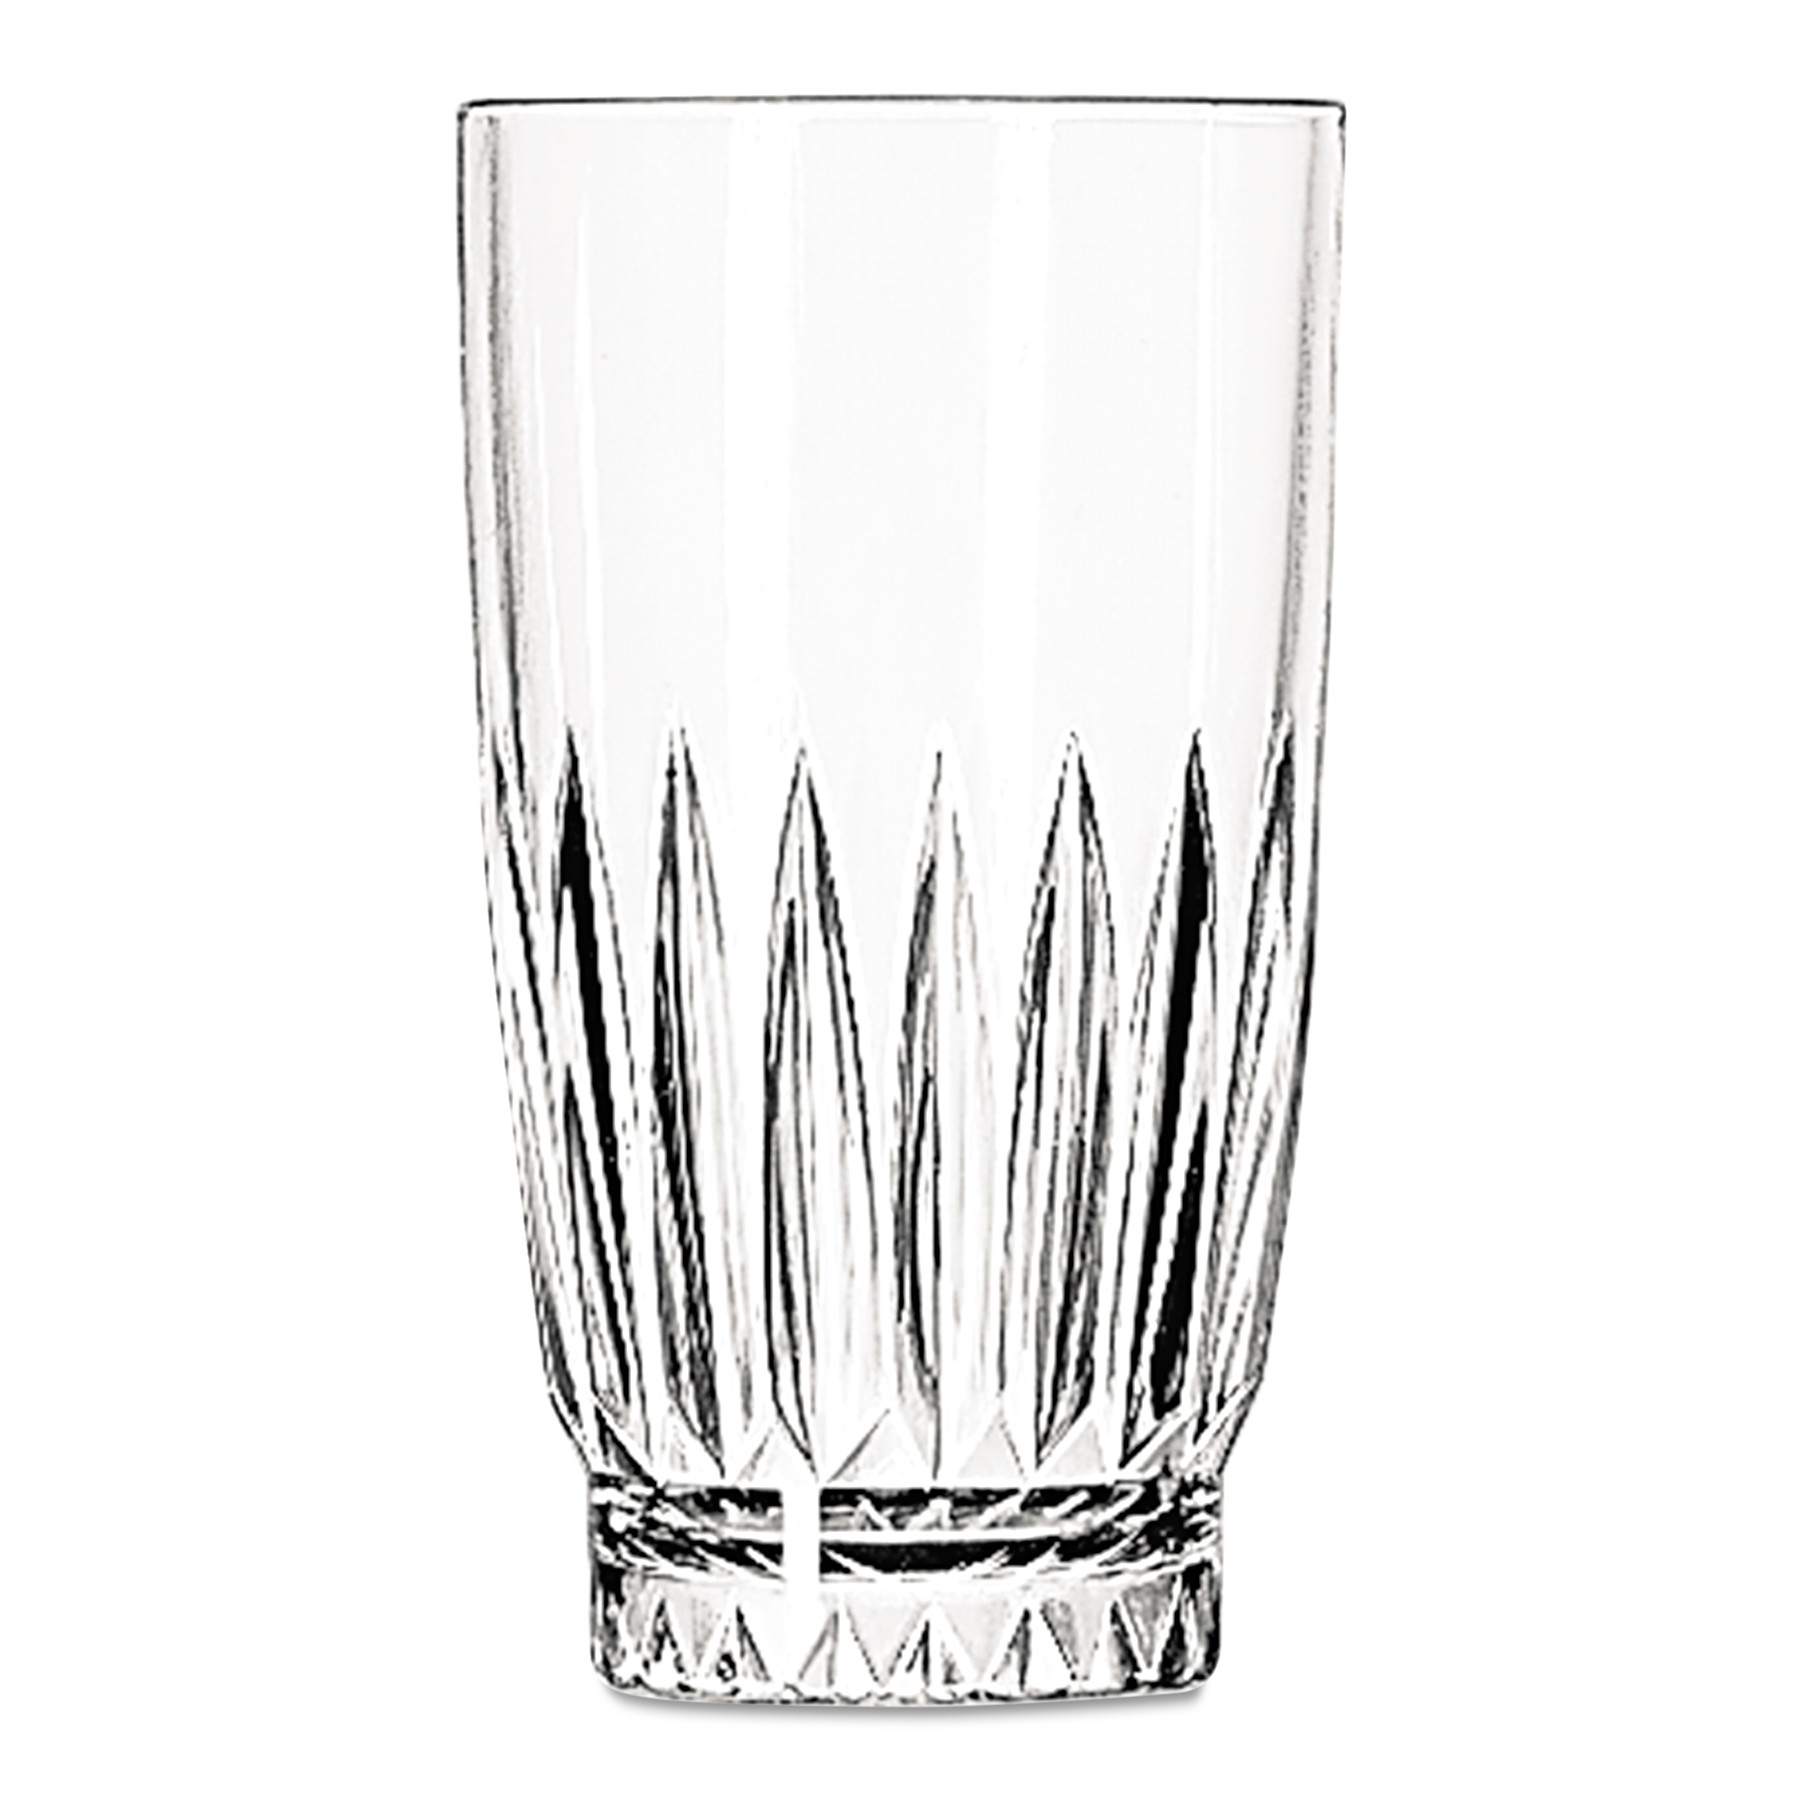 Libbey Winchester Clear Glasses, 12 oz, 36 count